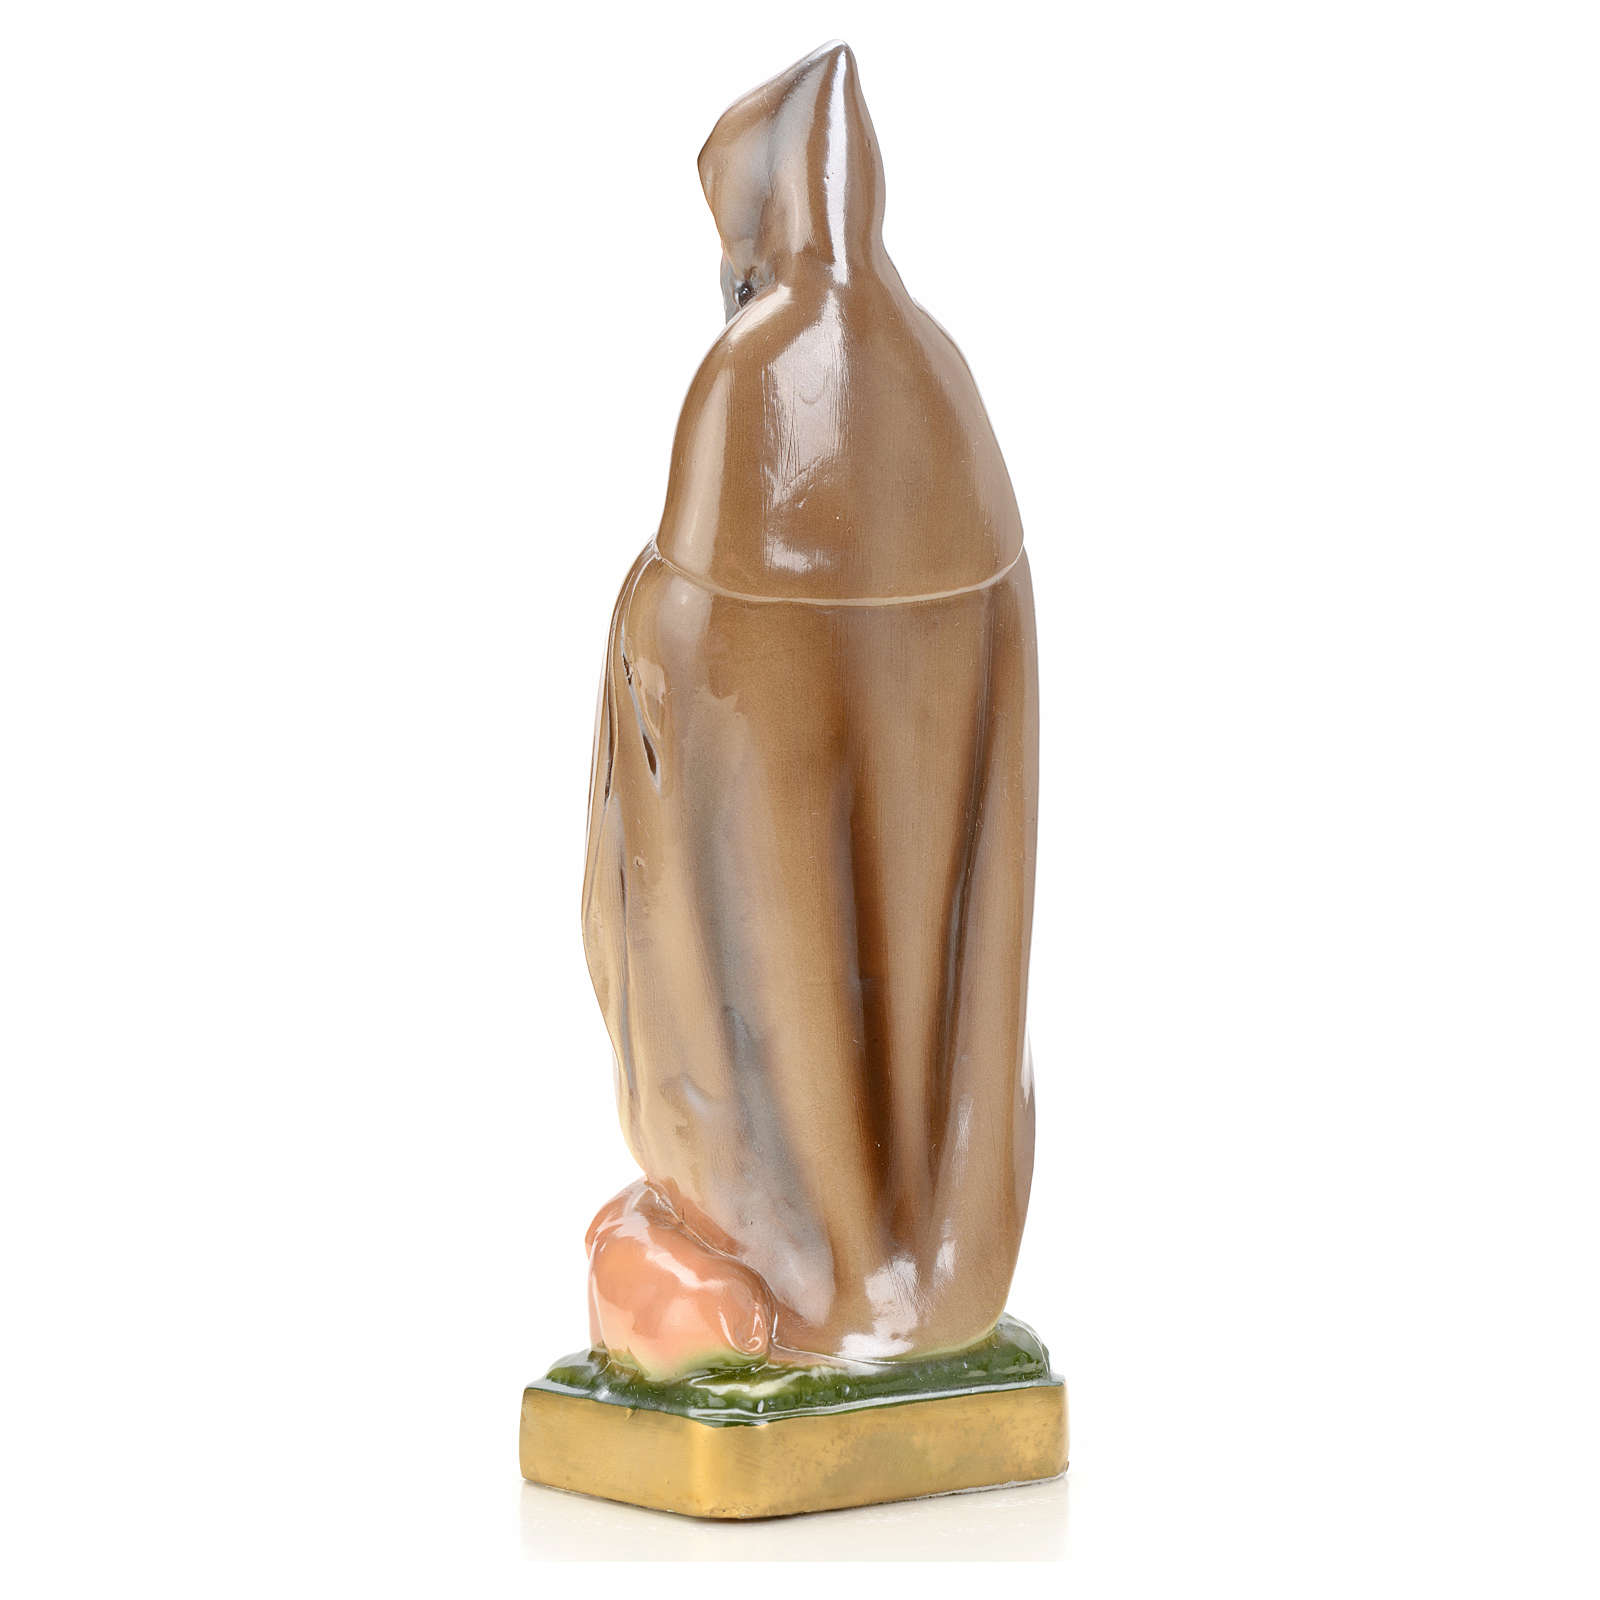 St Antony the Great statue in plaster and pearlized colors, 20 c 4